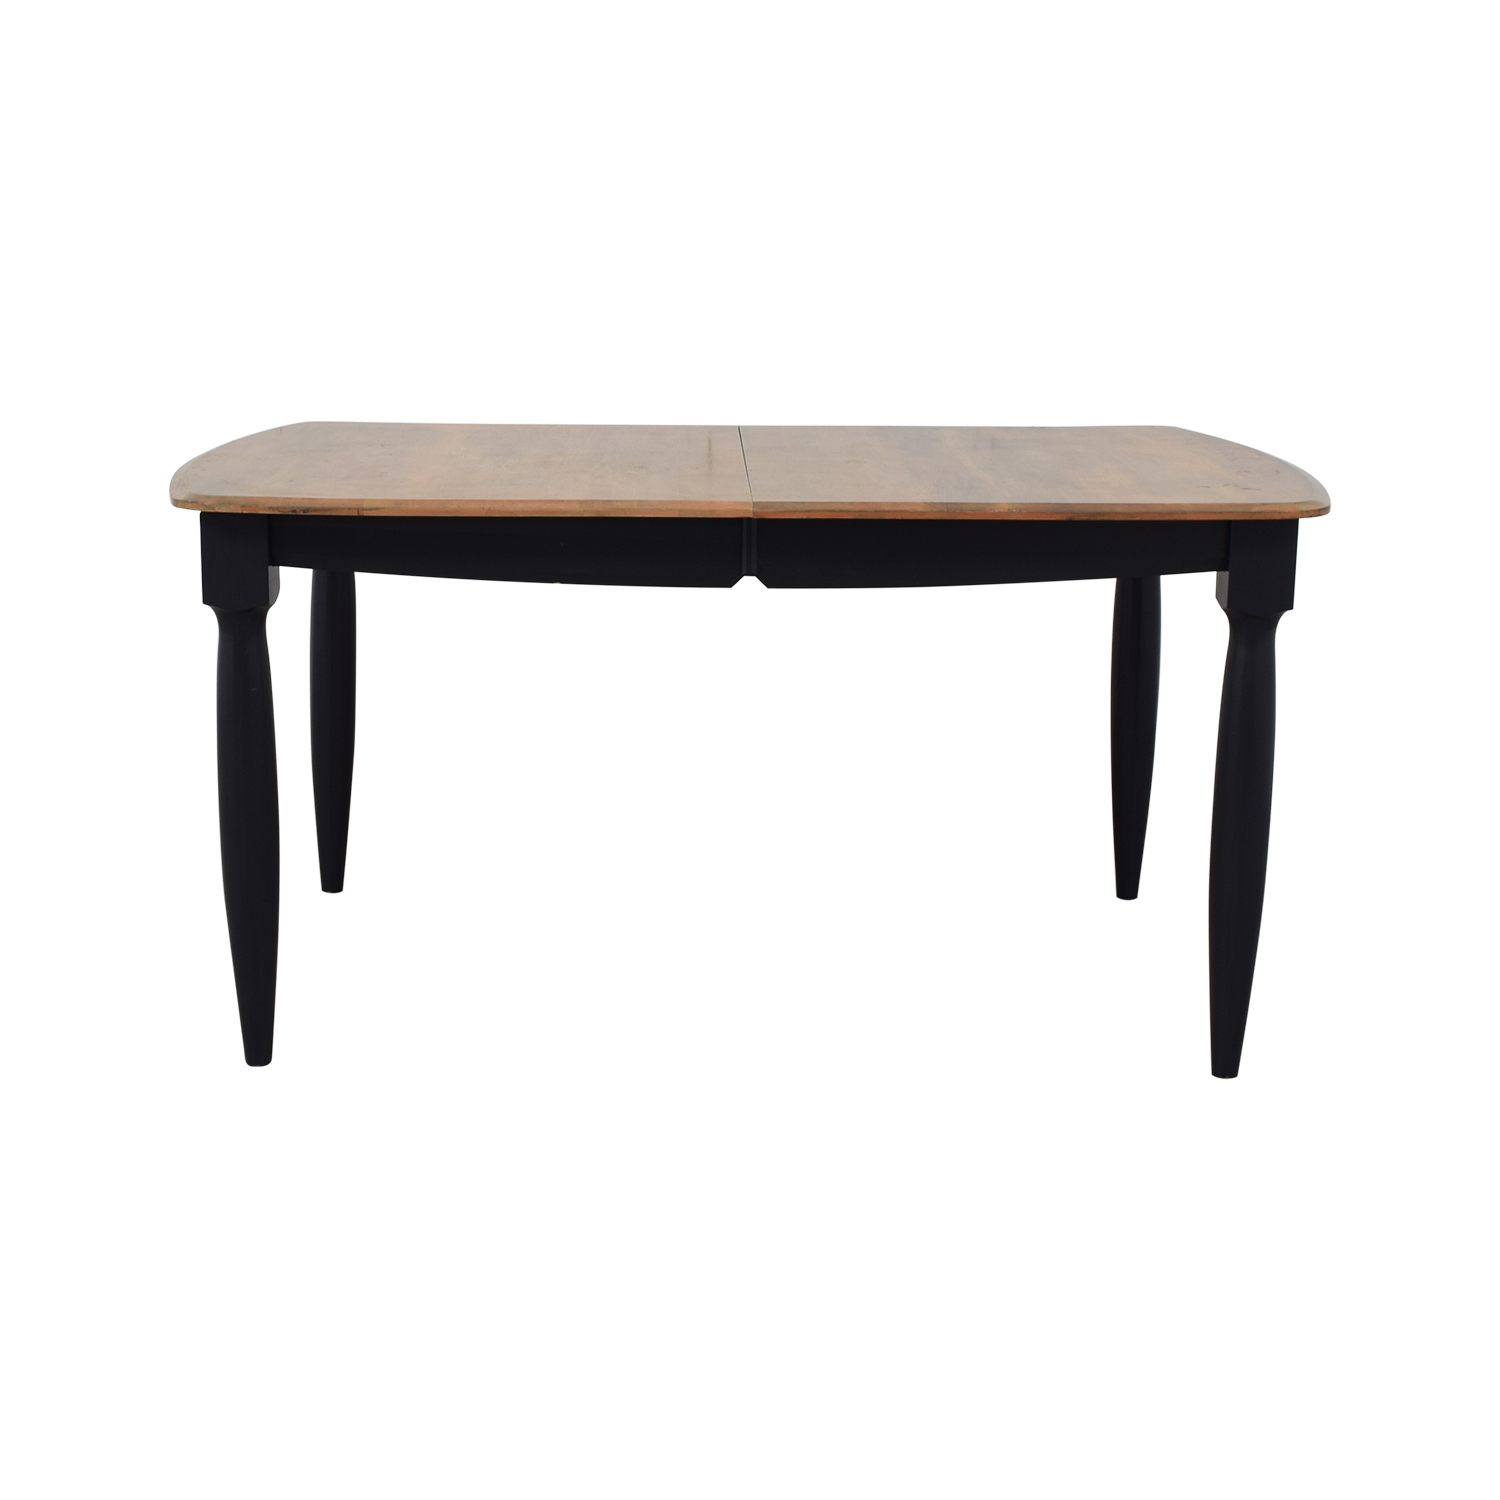 Canadel Canadel Kitchen Table Tables